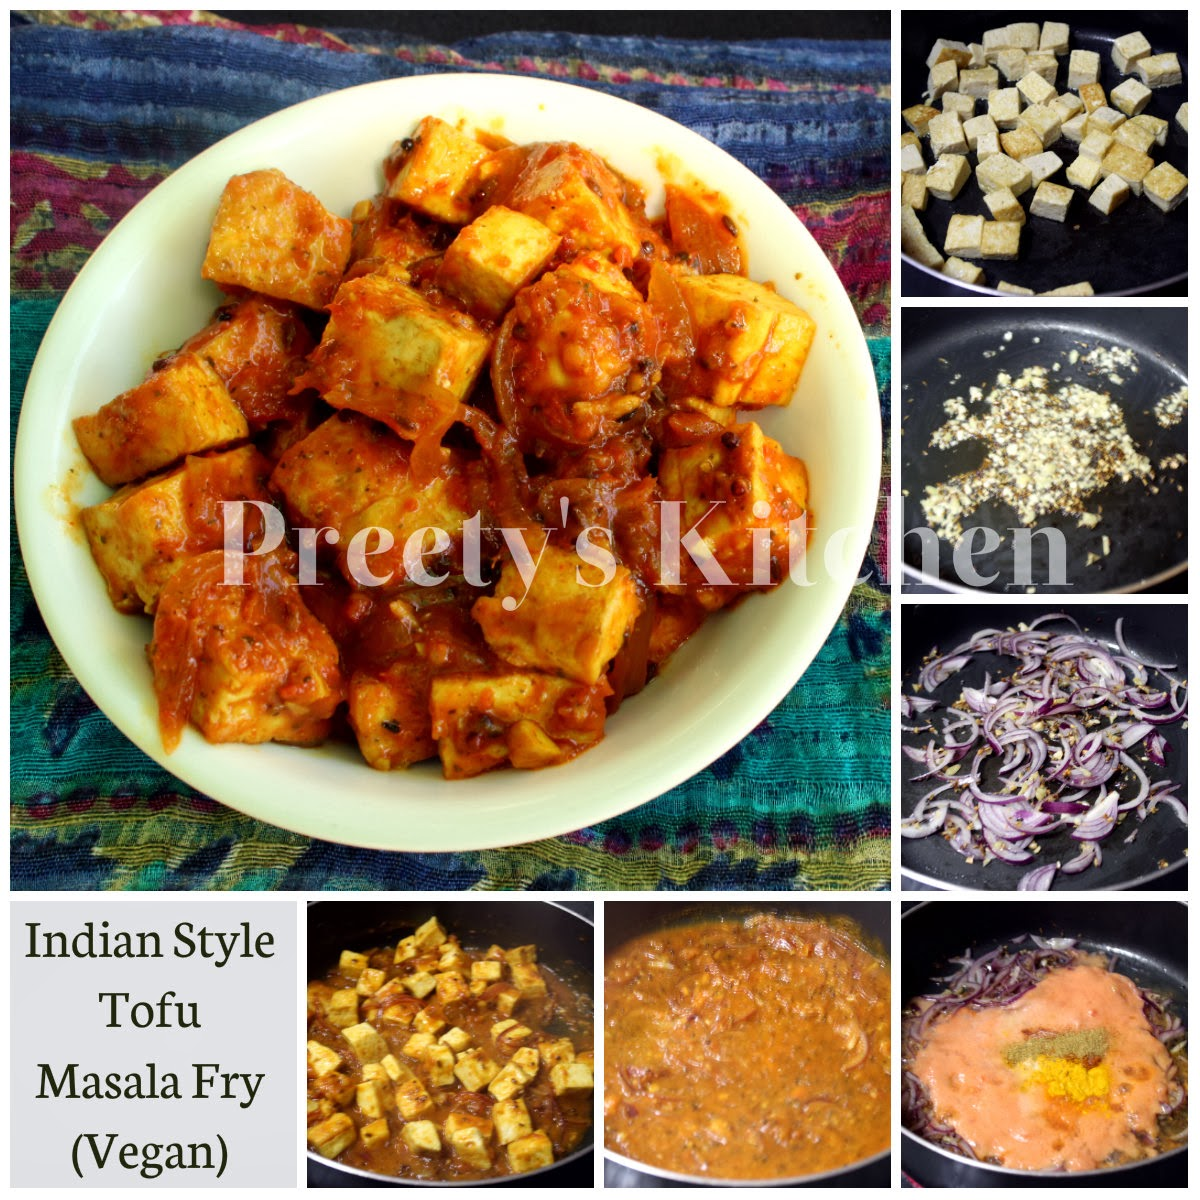 Preetys kitchen indian style tofu masala fry vegan recipe step turmeric powder or haldi 1 tsp red chilli powder 12 tsp garam masalapowder 12 tsp tofufirmdrained washed cut into cubes 1 12 or 2 cup forumfinder Gallery